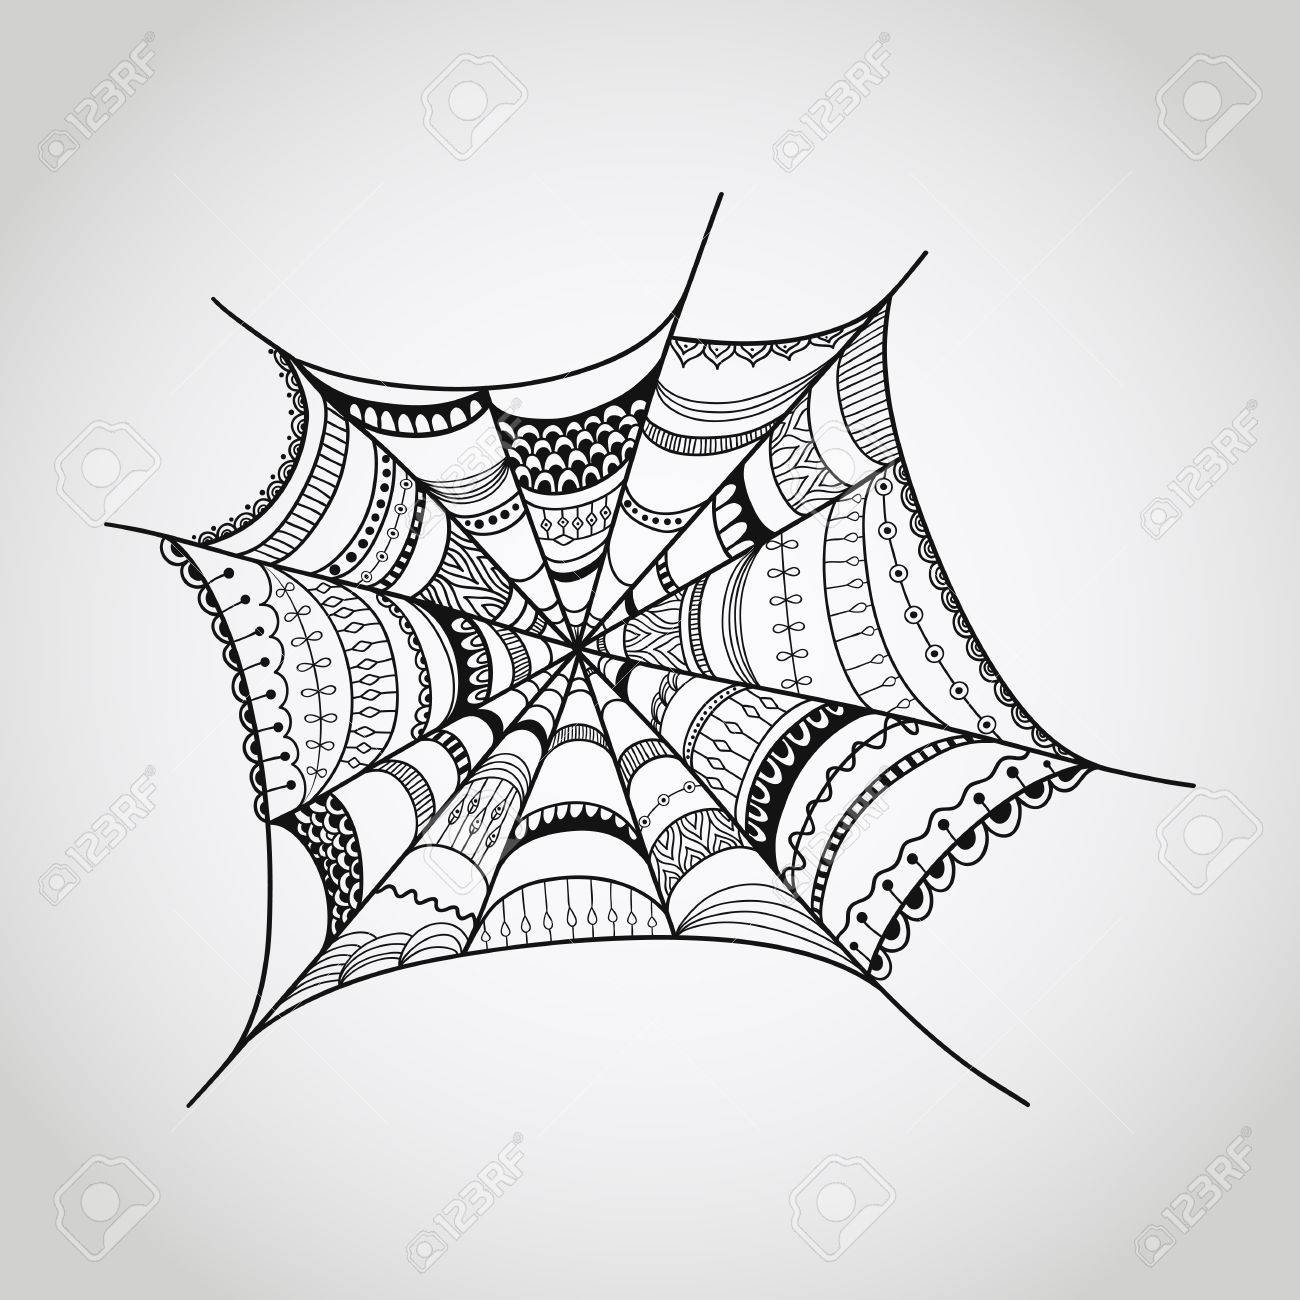 1300x1300 Spider Web Illustration Royalty Free Cliparts, Vectors, And Stock